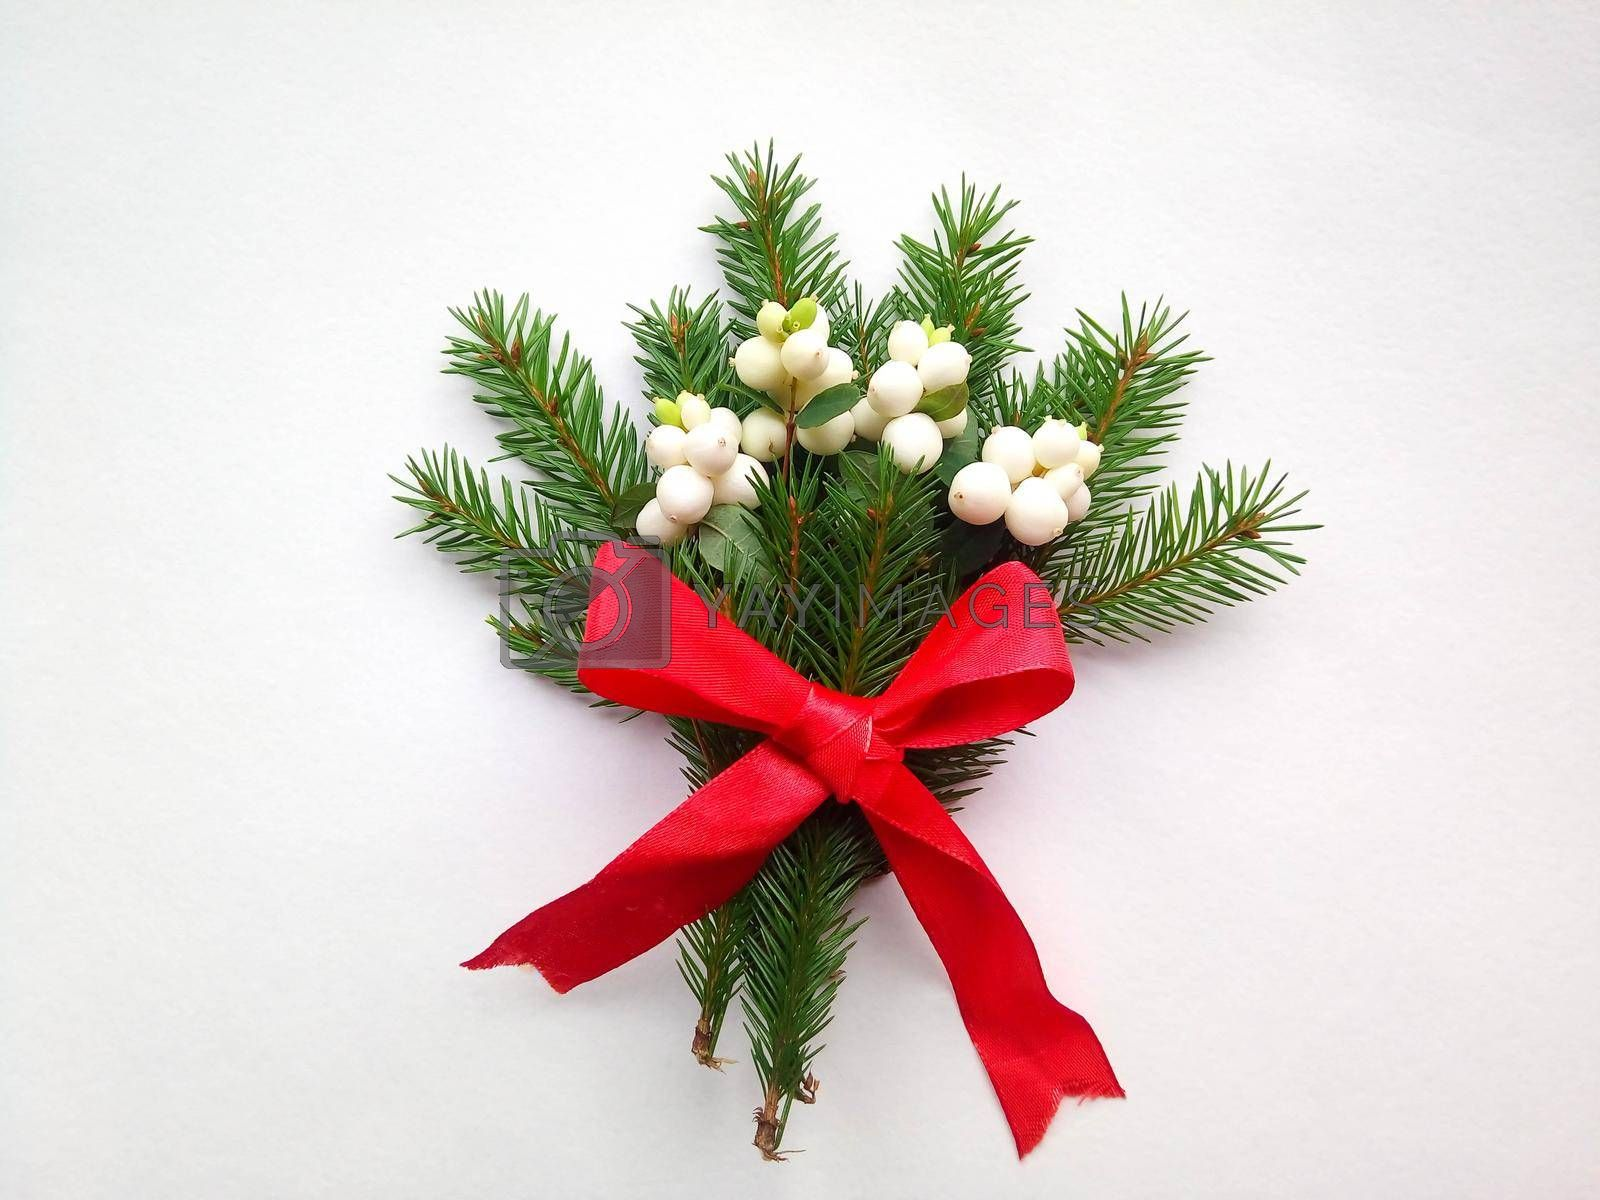 Spruce green branch with white berries with a red ribbon on a white background.